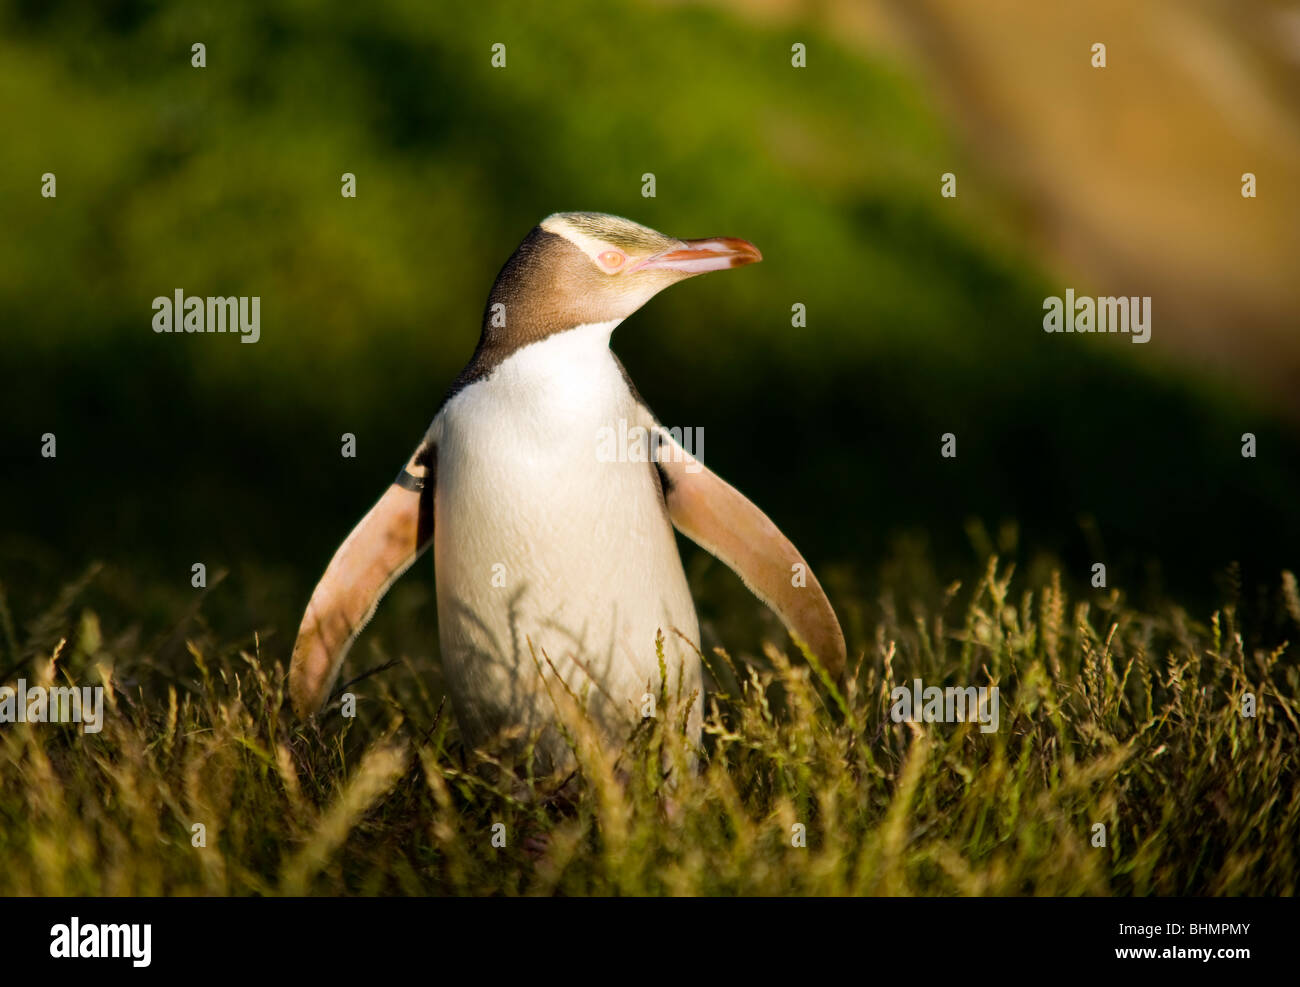 Yellow Eyed Penguin, Katiki Point, Otago, South Island, New Zealand - Stock Image